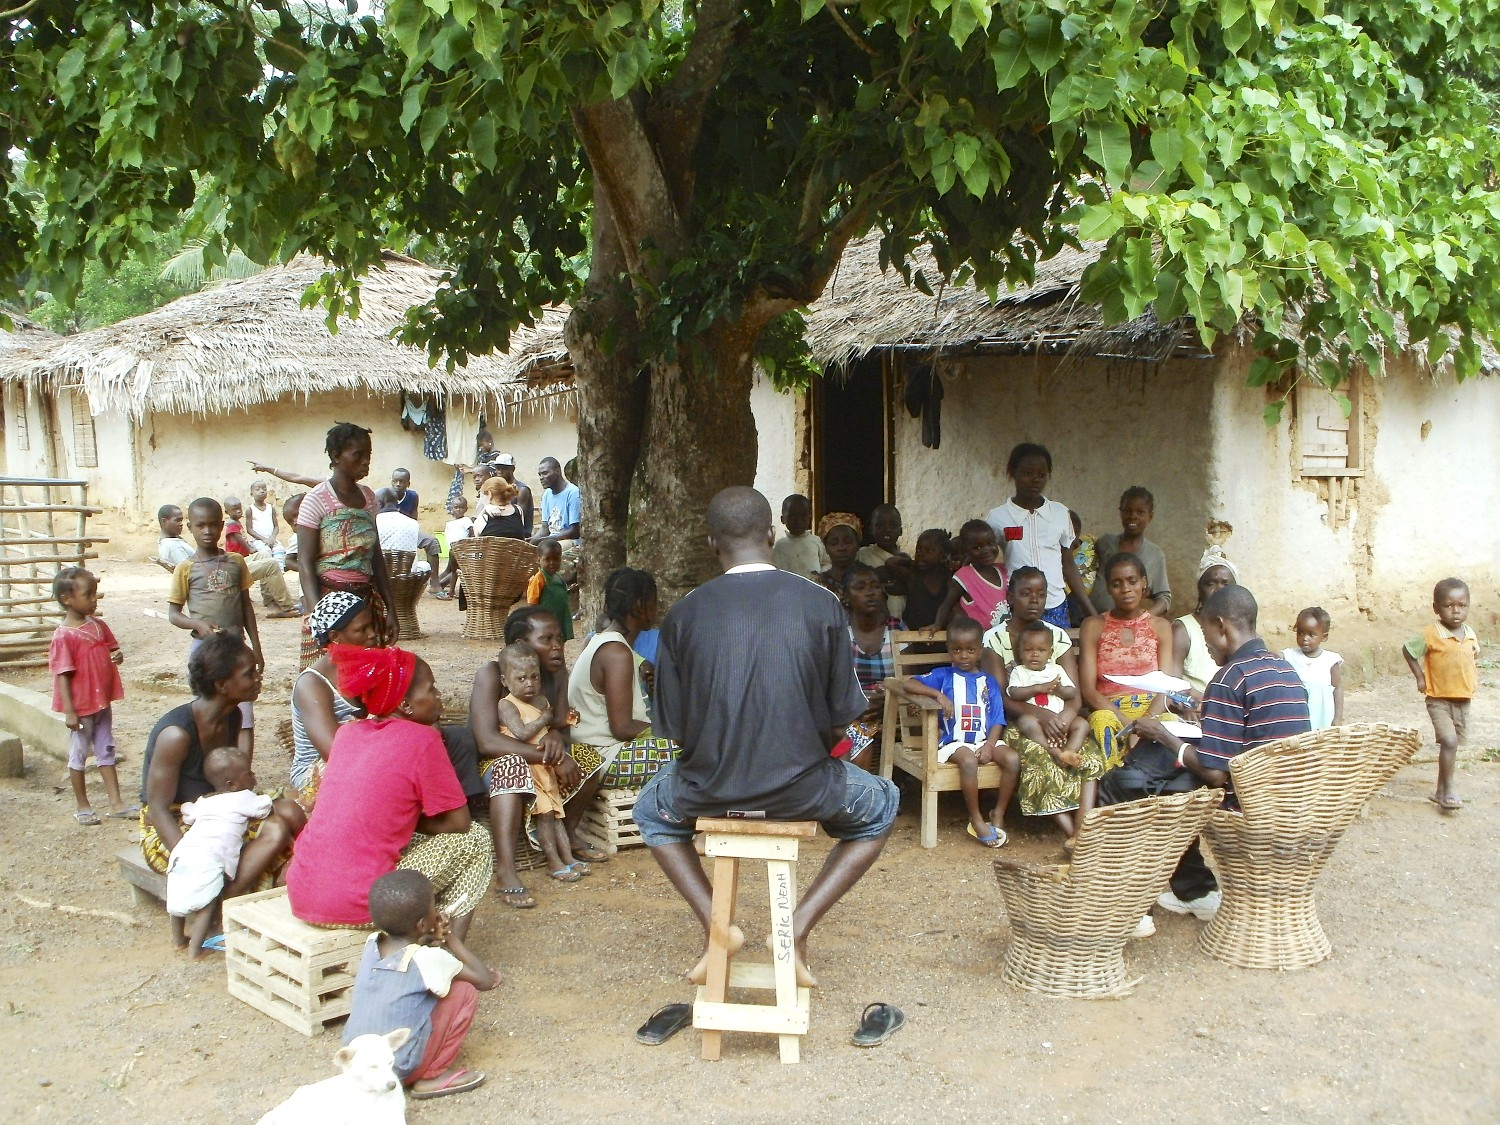 A Frontline Health Worker leads a focus group in the town of Doweh, Liberia. Photo courtesy of Last Mile Health.